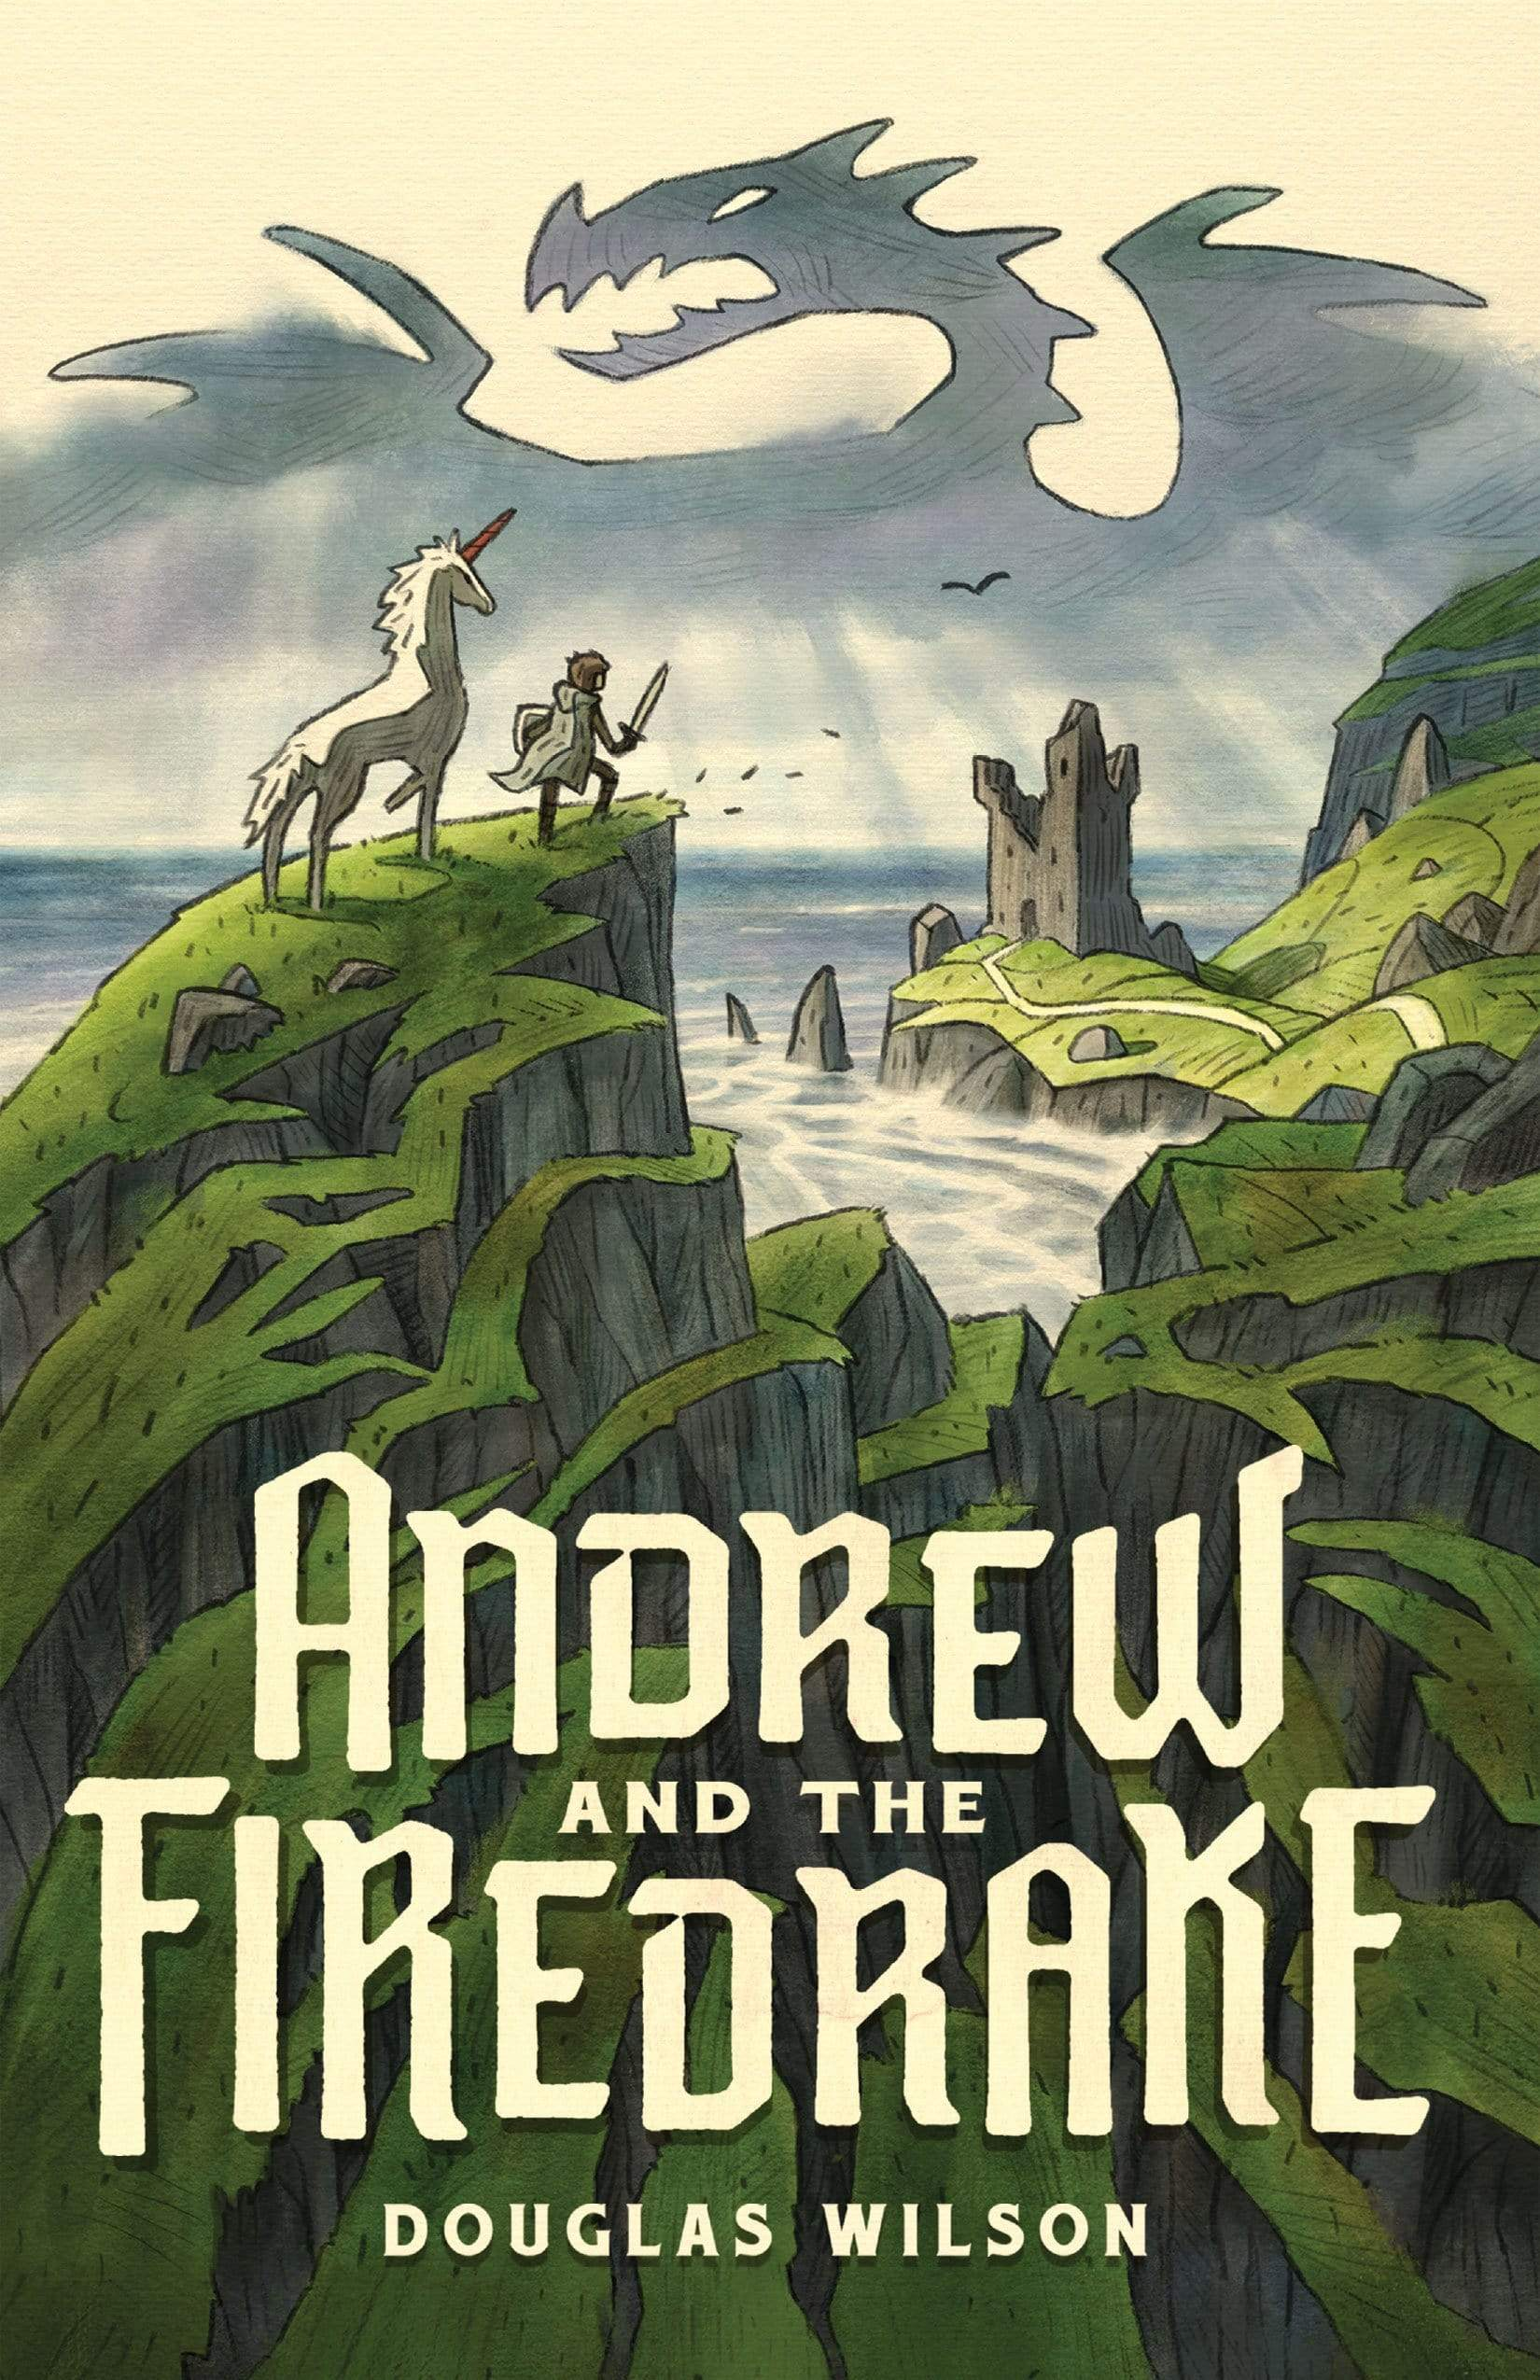 Andrew and the Firedrake (Hardback)